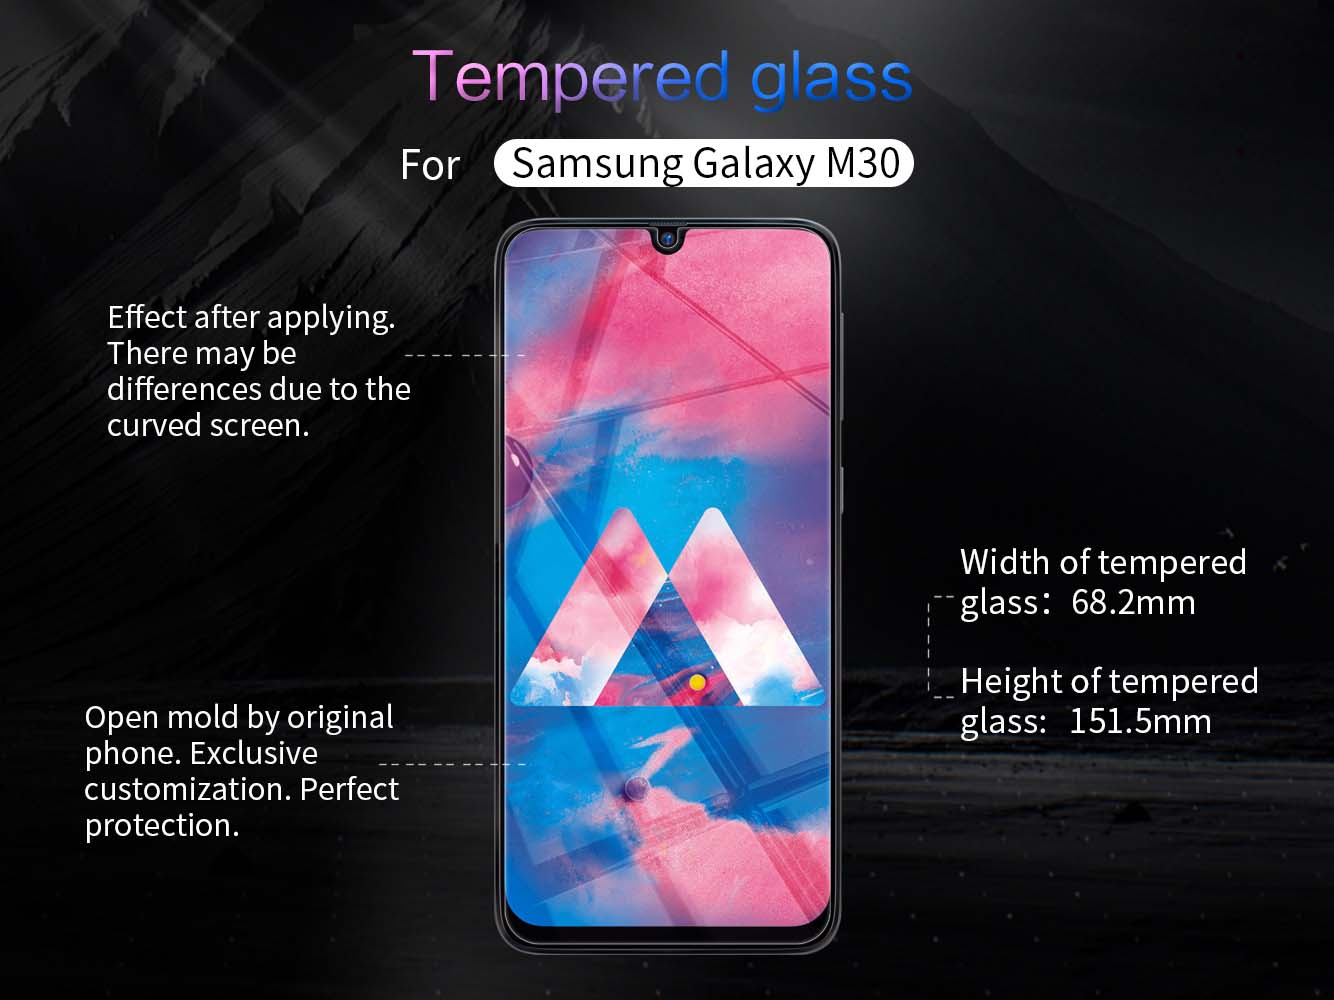 Samsung Galaxy M30 screen protector